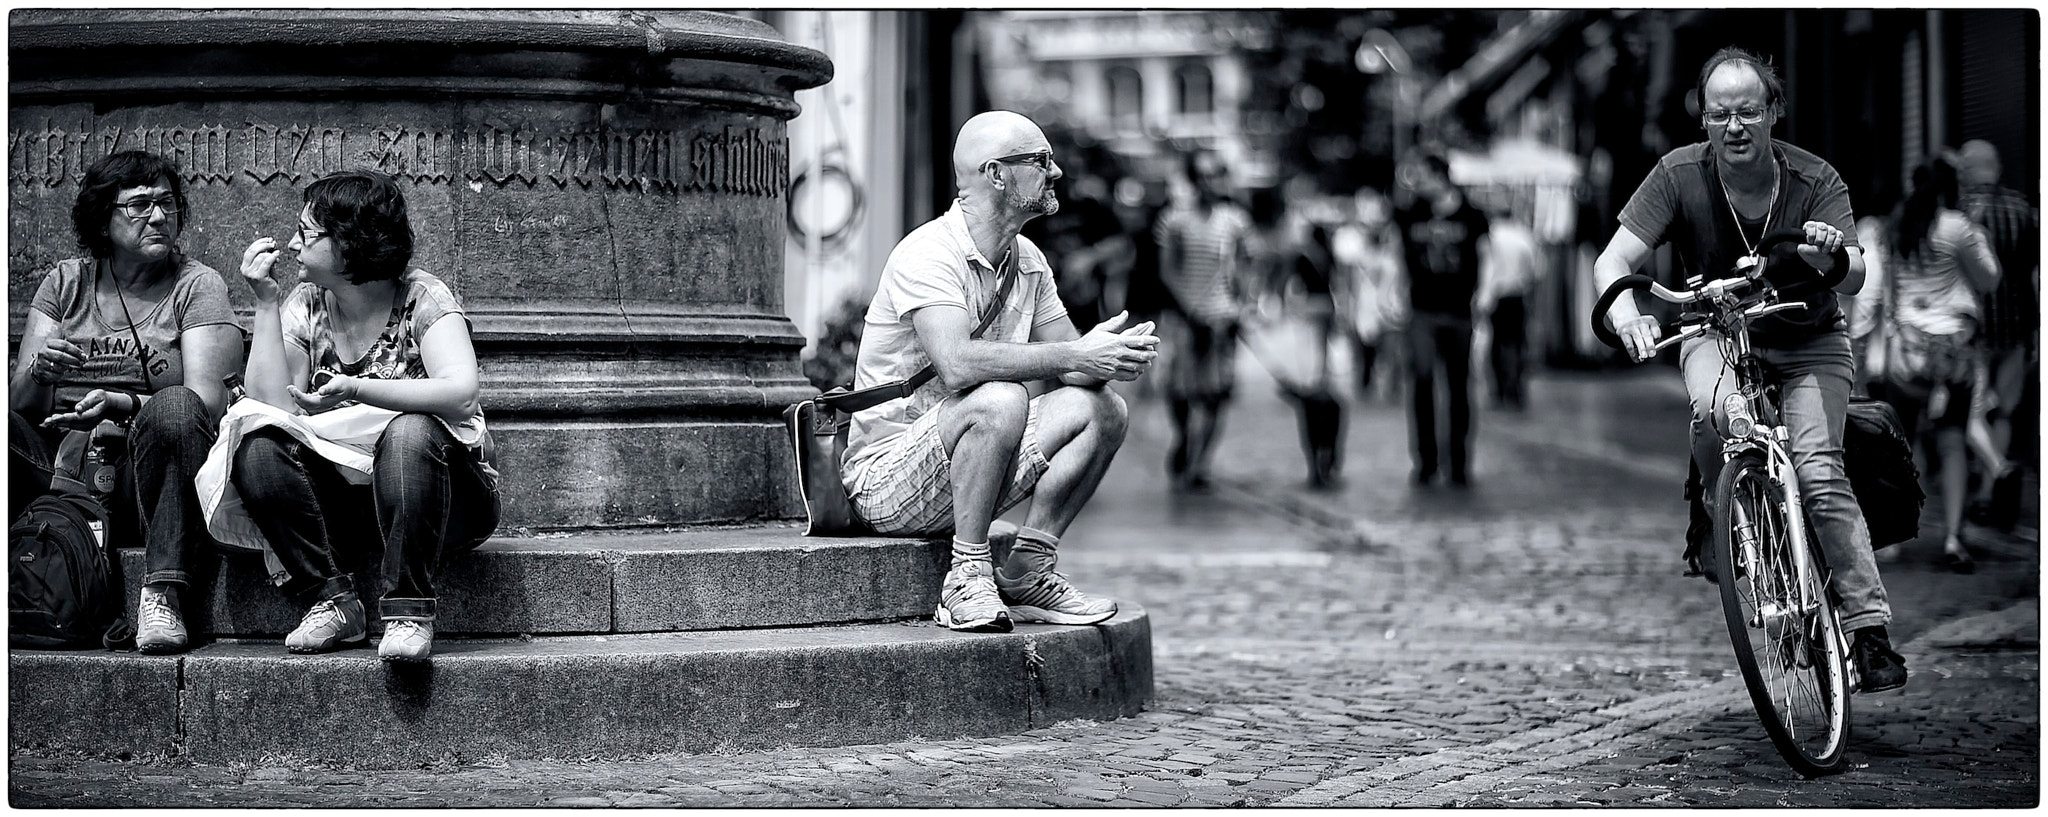 Photograph A Day in Antwerp by Fouquier  on 500px